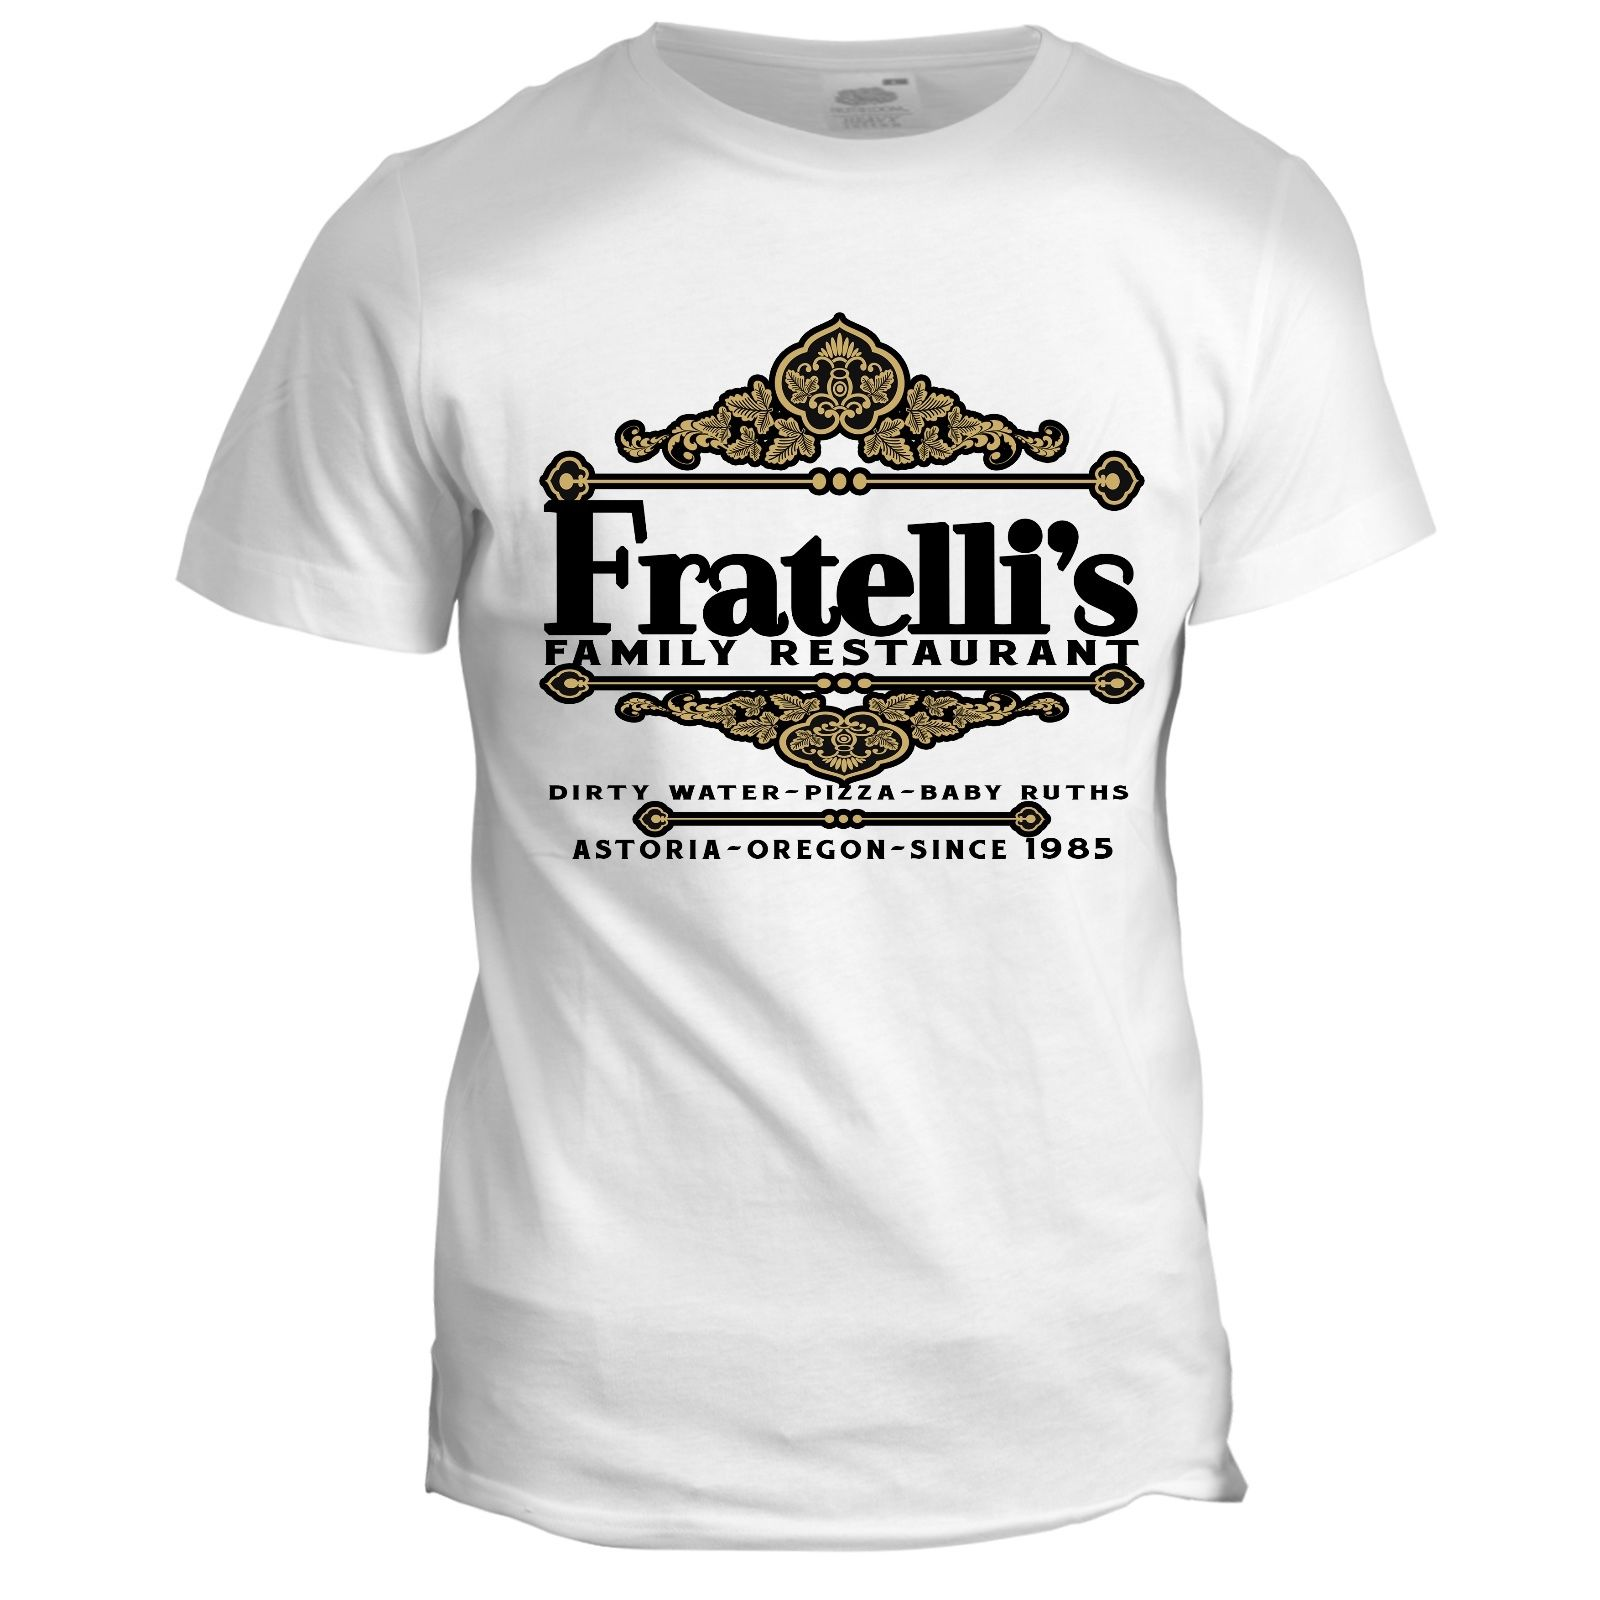 Fratelli's Restaurant Inspired The Goonies 80s Retro Italian Movie Film T Shirt Short Sleeve 100% Cotton Man Tee Tops image